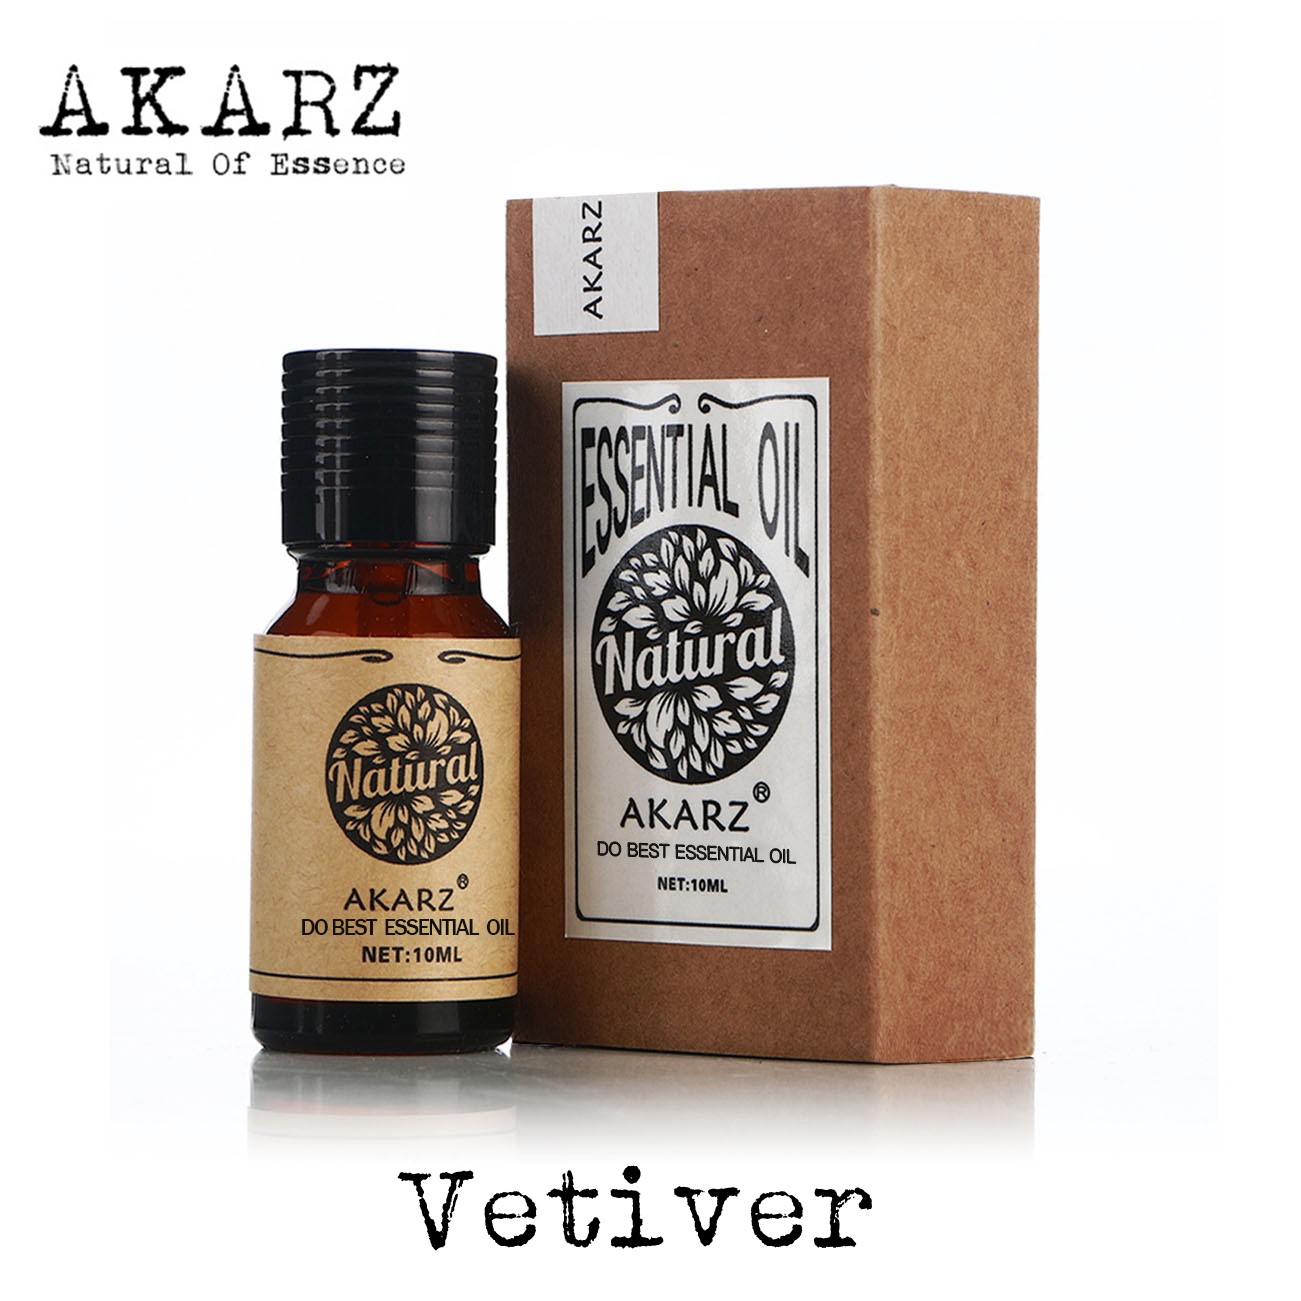 AKARZ Famous brand natural Vetiver Essential Oil skin Calm Wound healing Oil control balance antibiosis Vetiver Oil lumene natural code skin perfector 10 vanilla купить